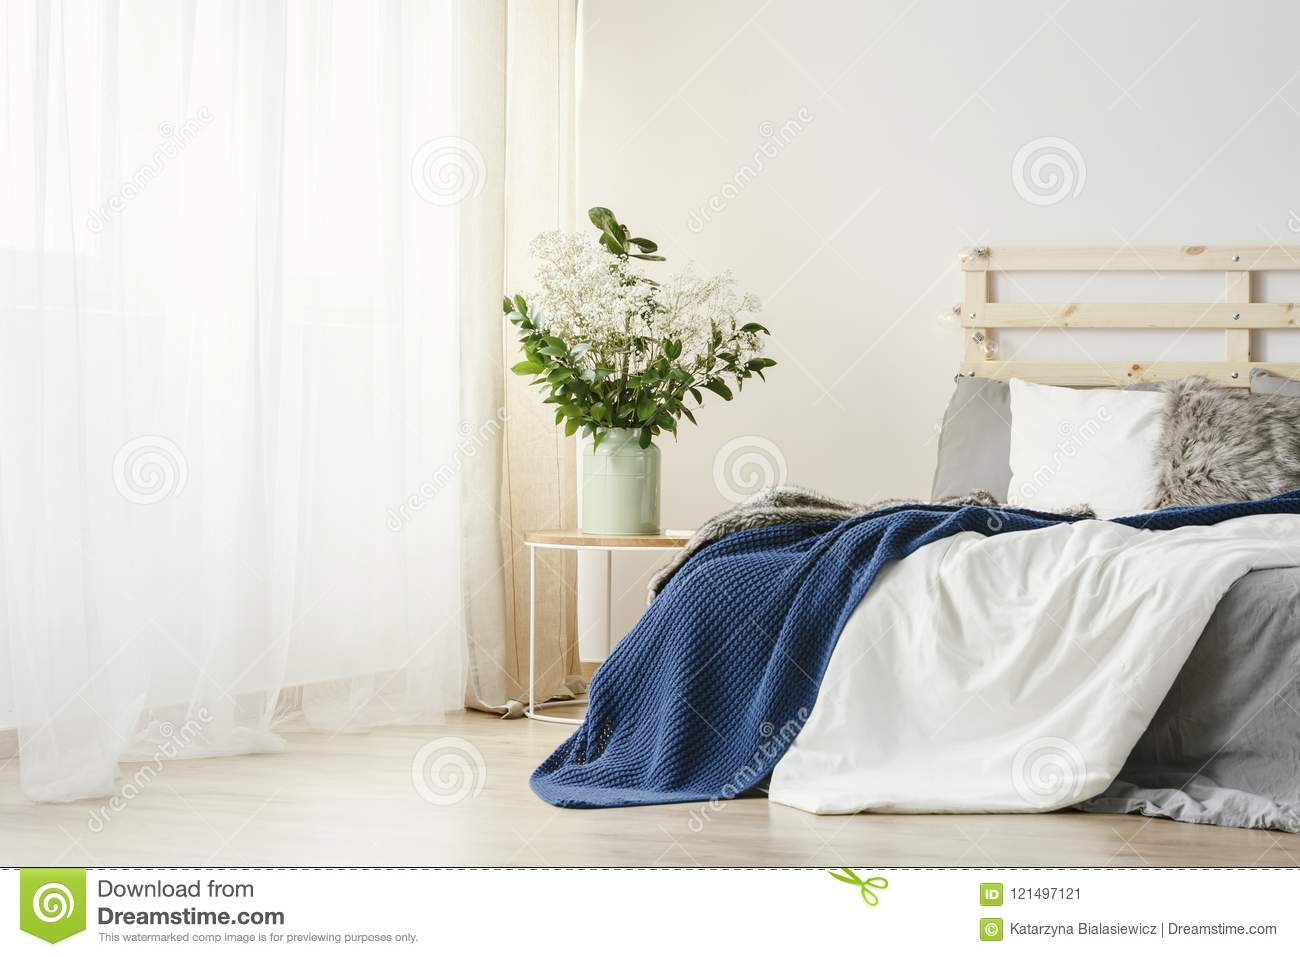 Navy Blue Blanket Thrown On Double Bed With Lights On Bedhead St Stock Image Image Of Blanket Home 121497121